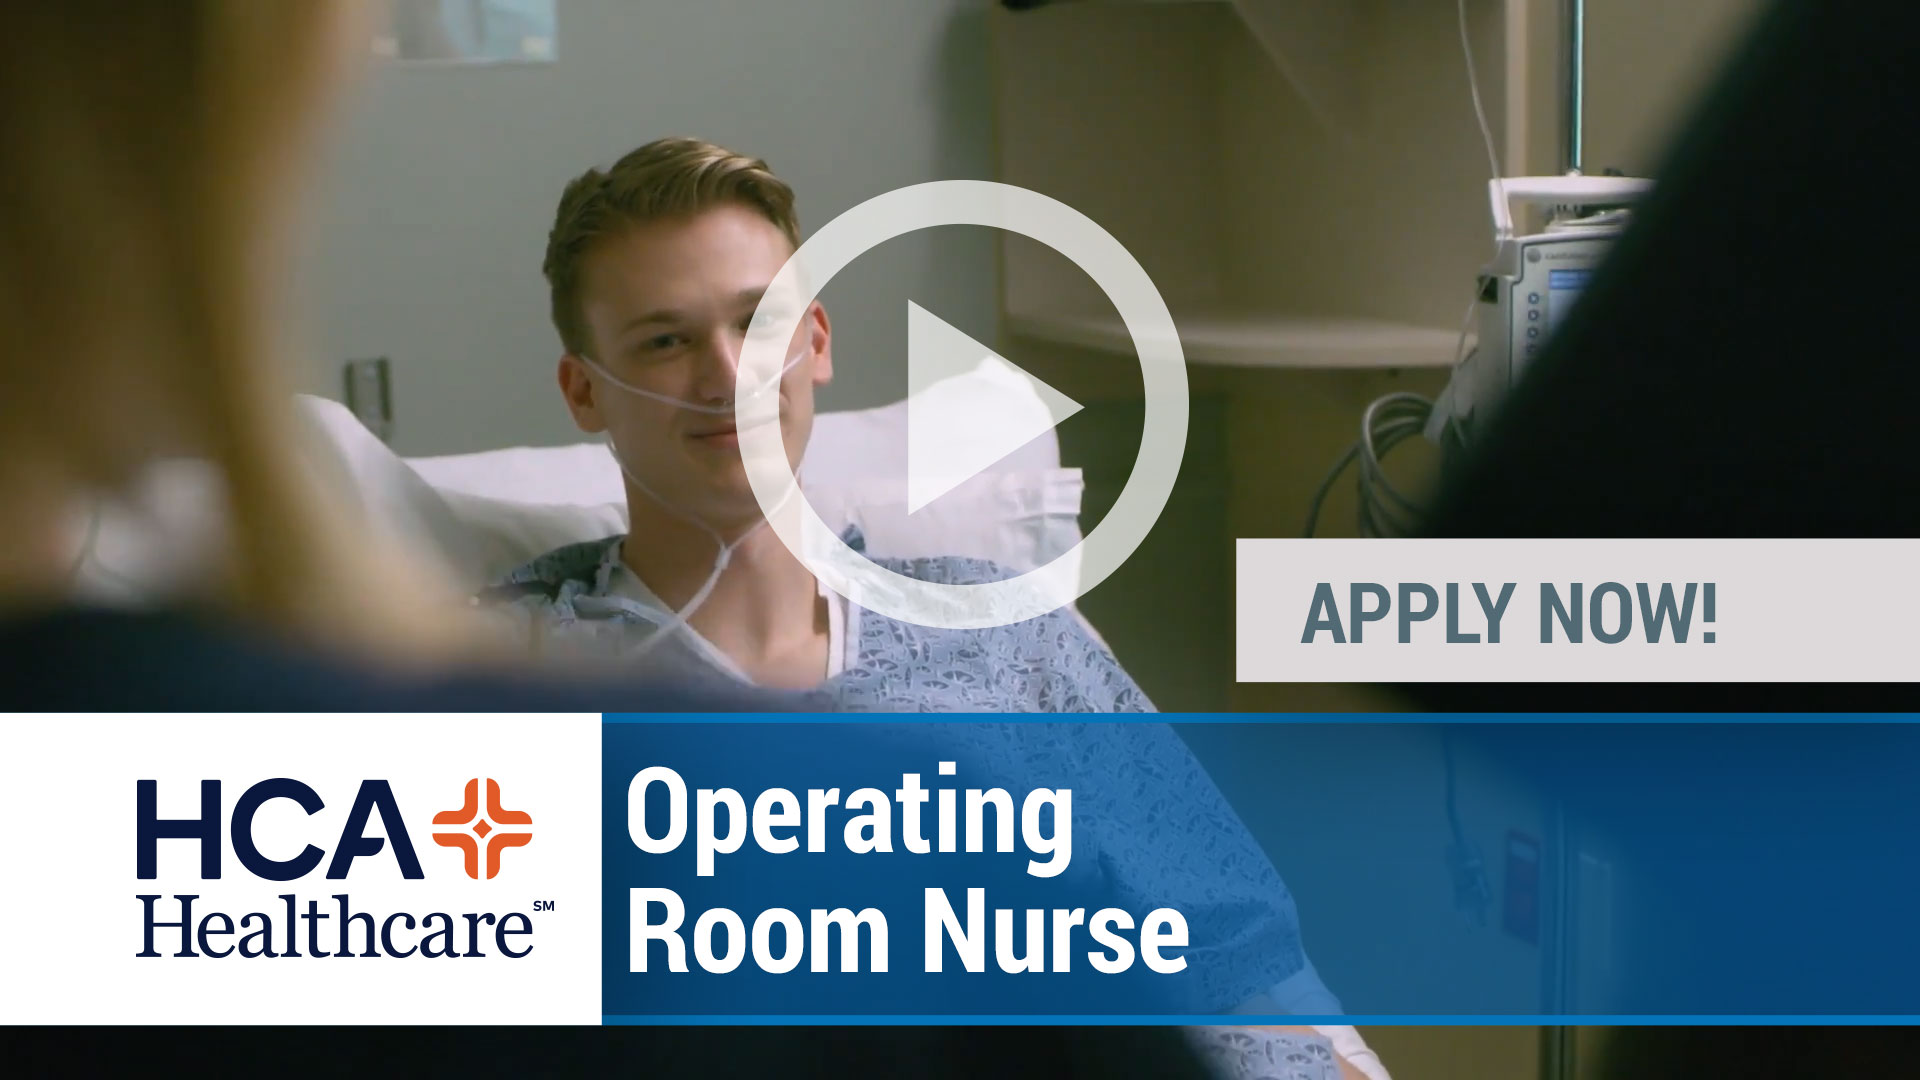 Watch our careers video for available job opening Operating Room Nurse in Plantation, Florida